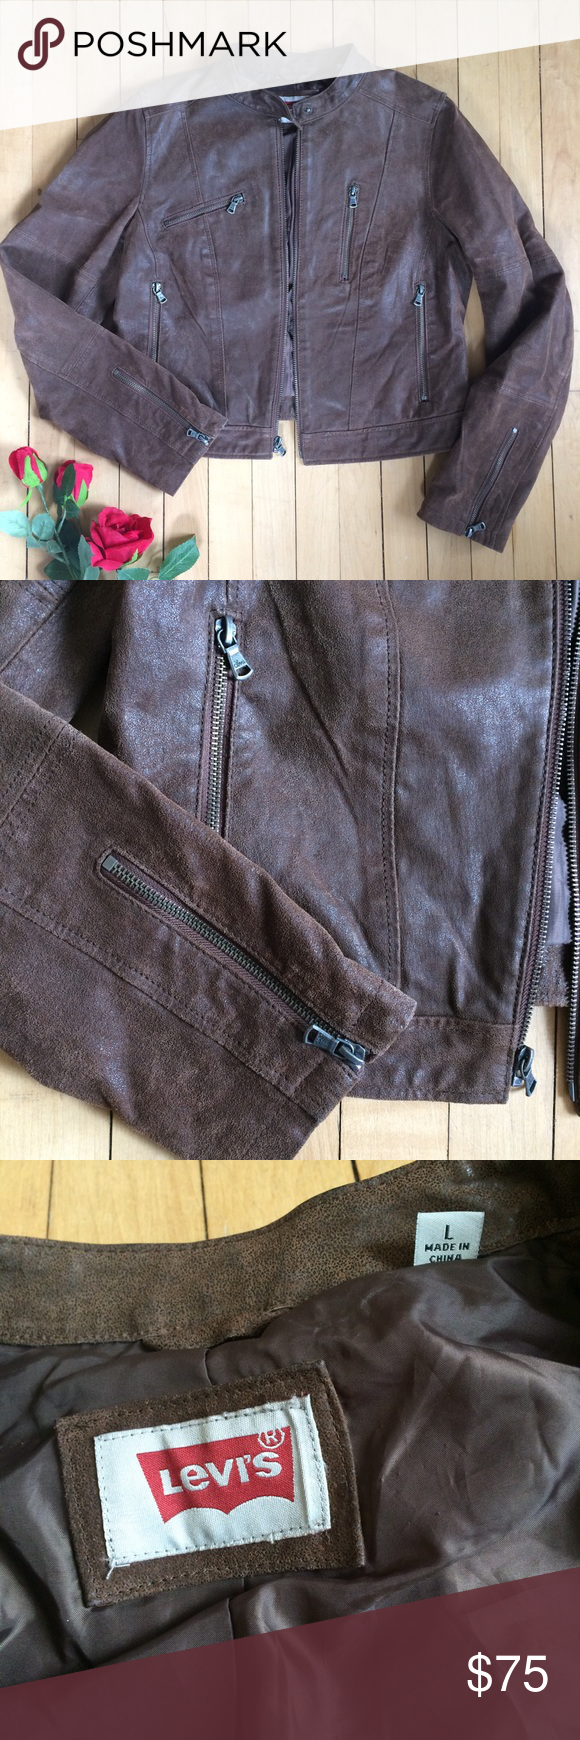 Levi's Brown Suede Leather Moto Jacket Jackets, Leather